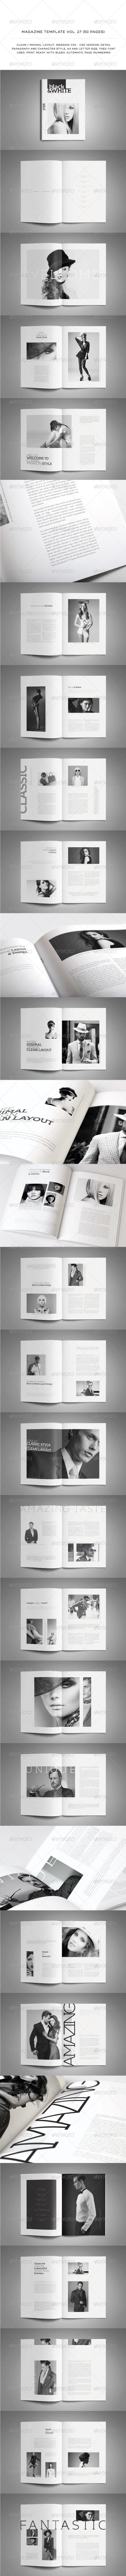 A4/Letter 50 Pages Mgz (Vol. 27) - Magazines Print Templates